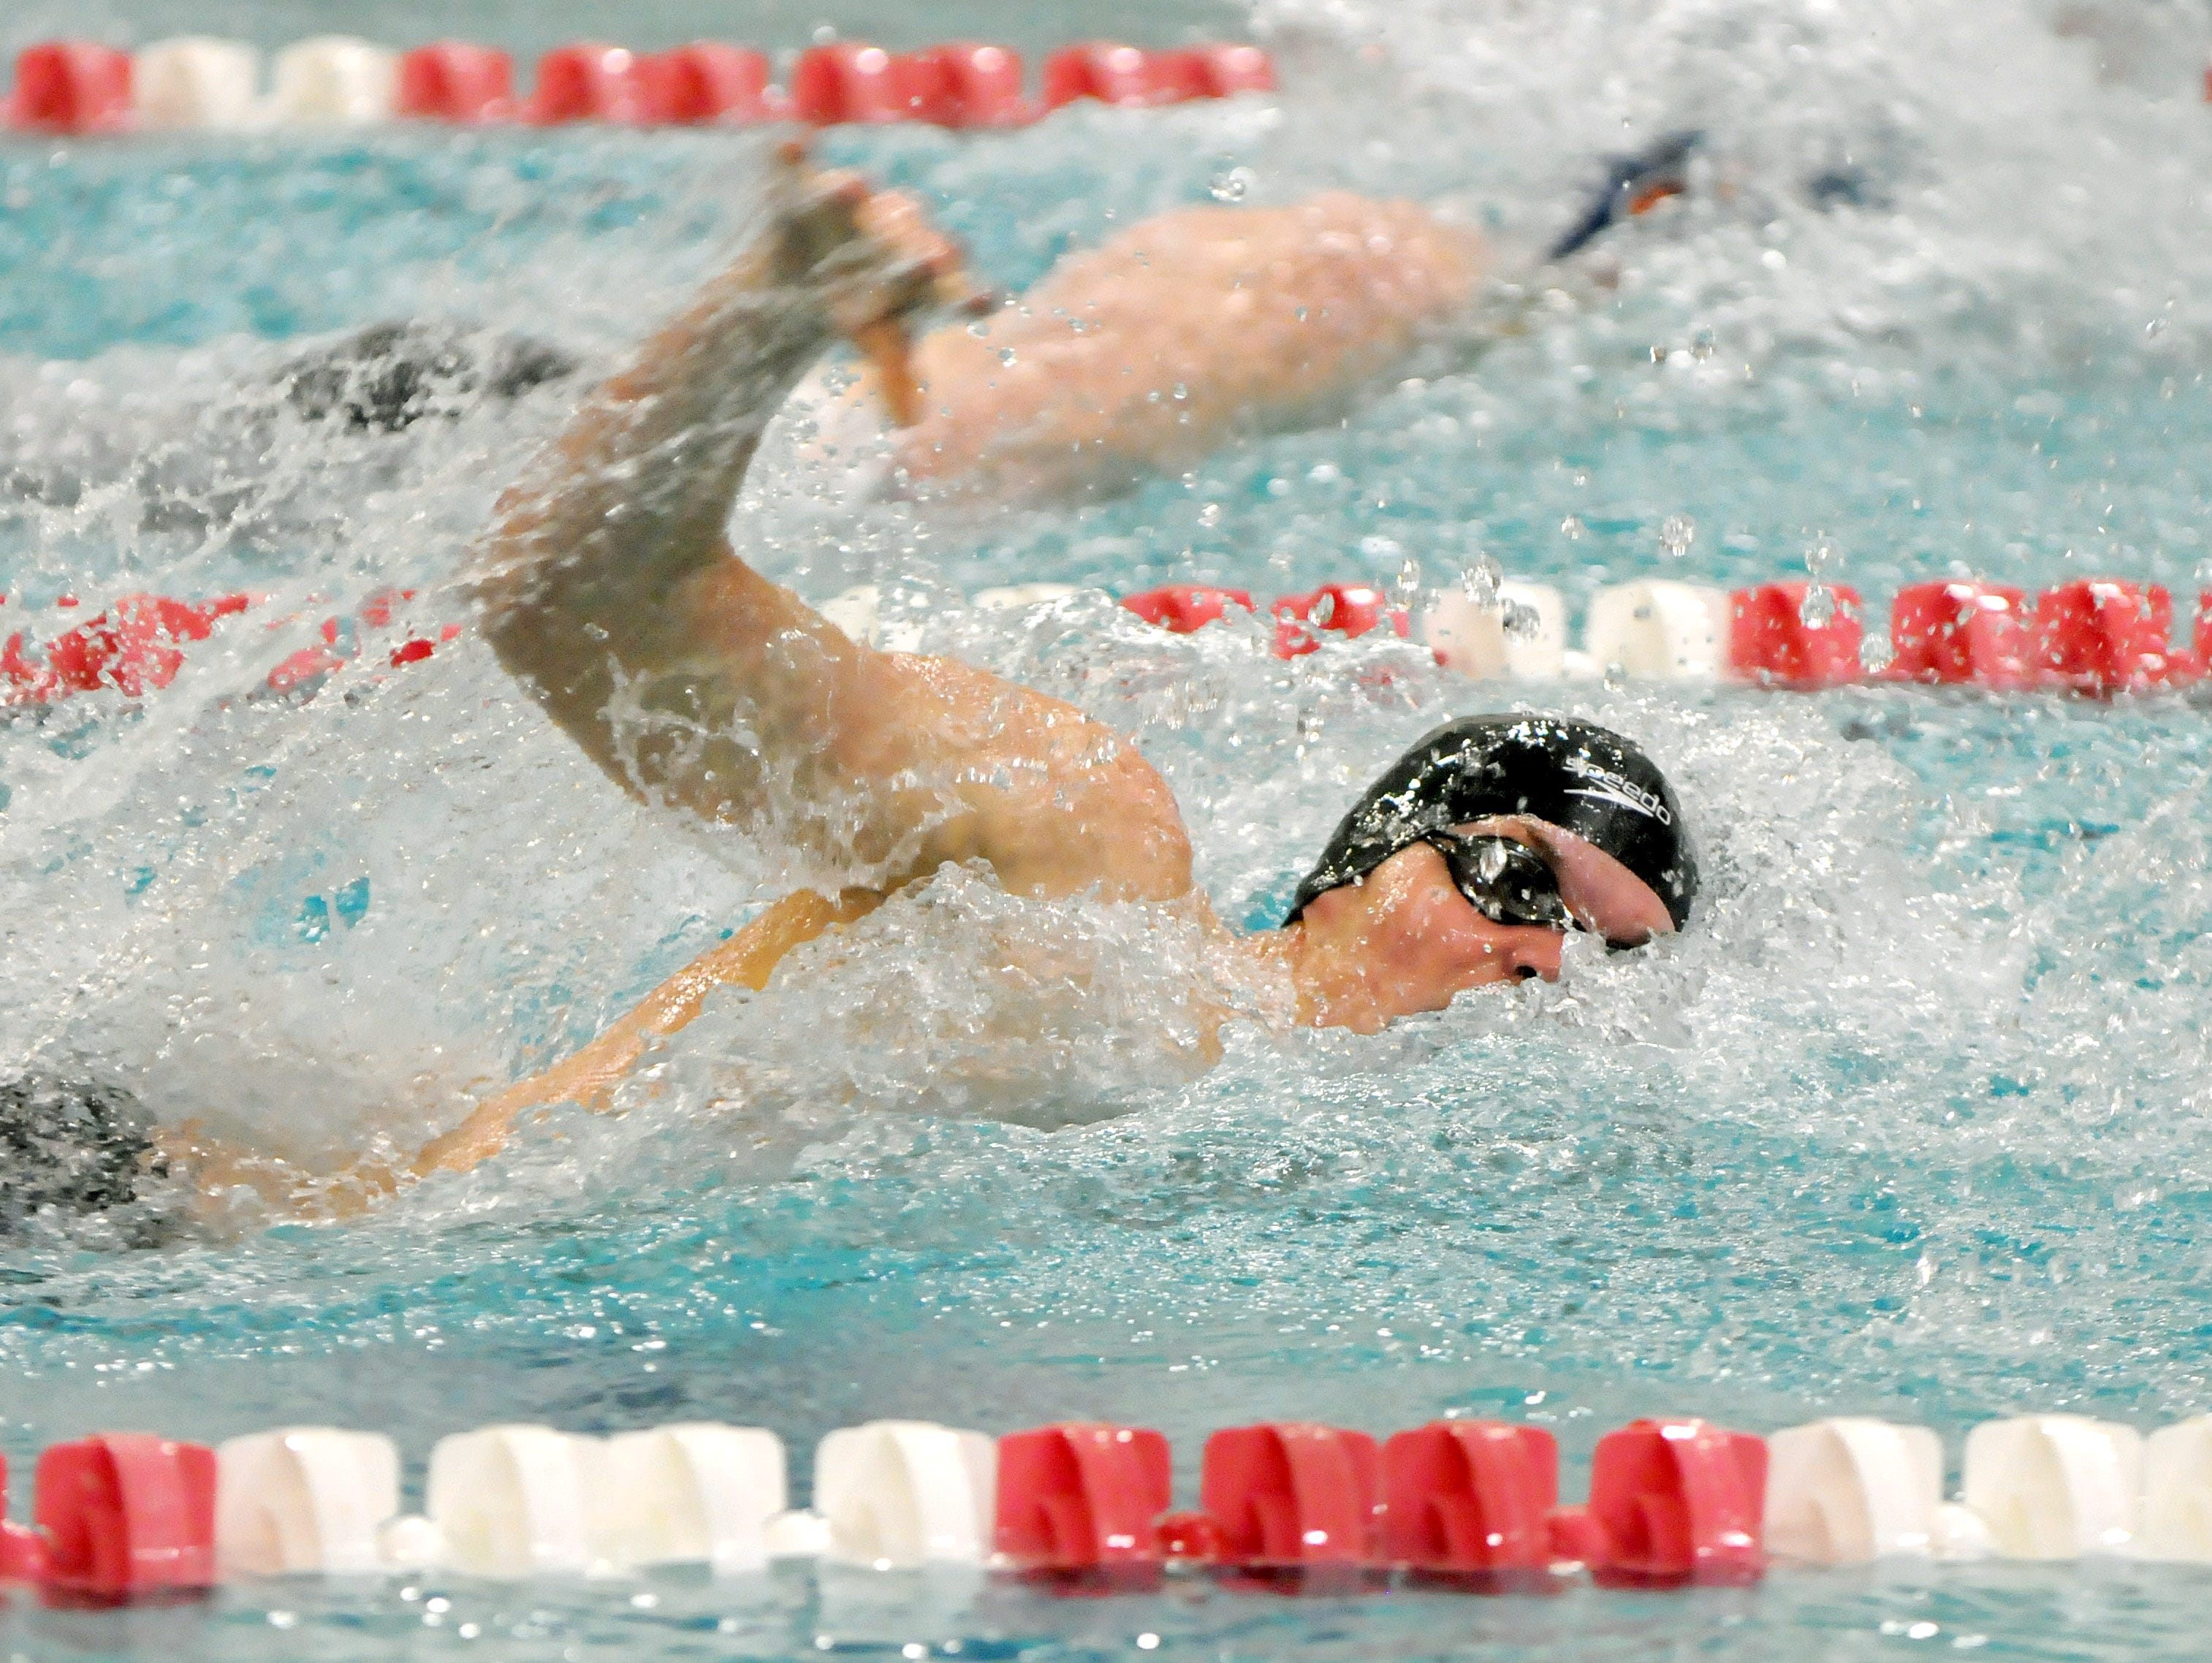 Tyler Hill, of Horace Greeley, swims the 100 yard Freestyle at the 2016 NYSPHSAA Swim Meet at the Erie Community College Flickinger Center in Buffalo, N.Y. on Friday, March 4, 2016. (Photo for The Journal News/ Don Heupel)